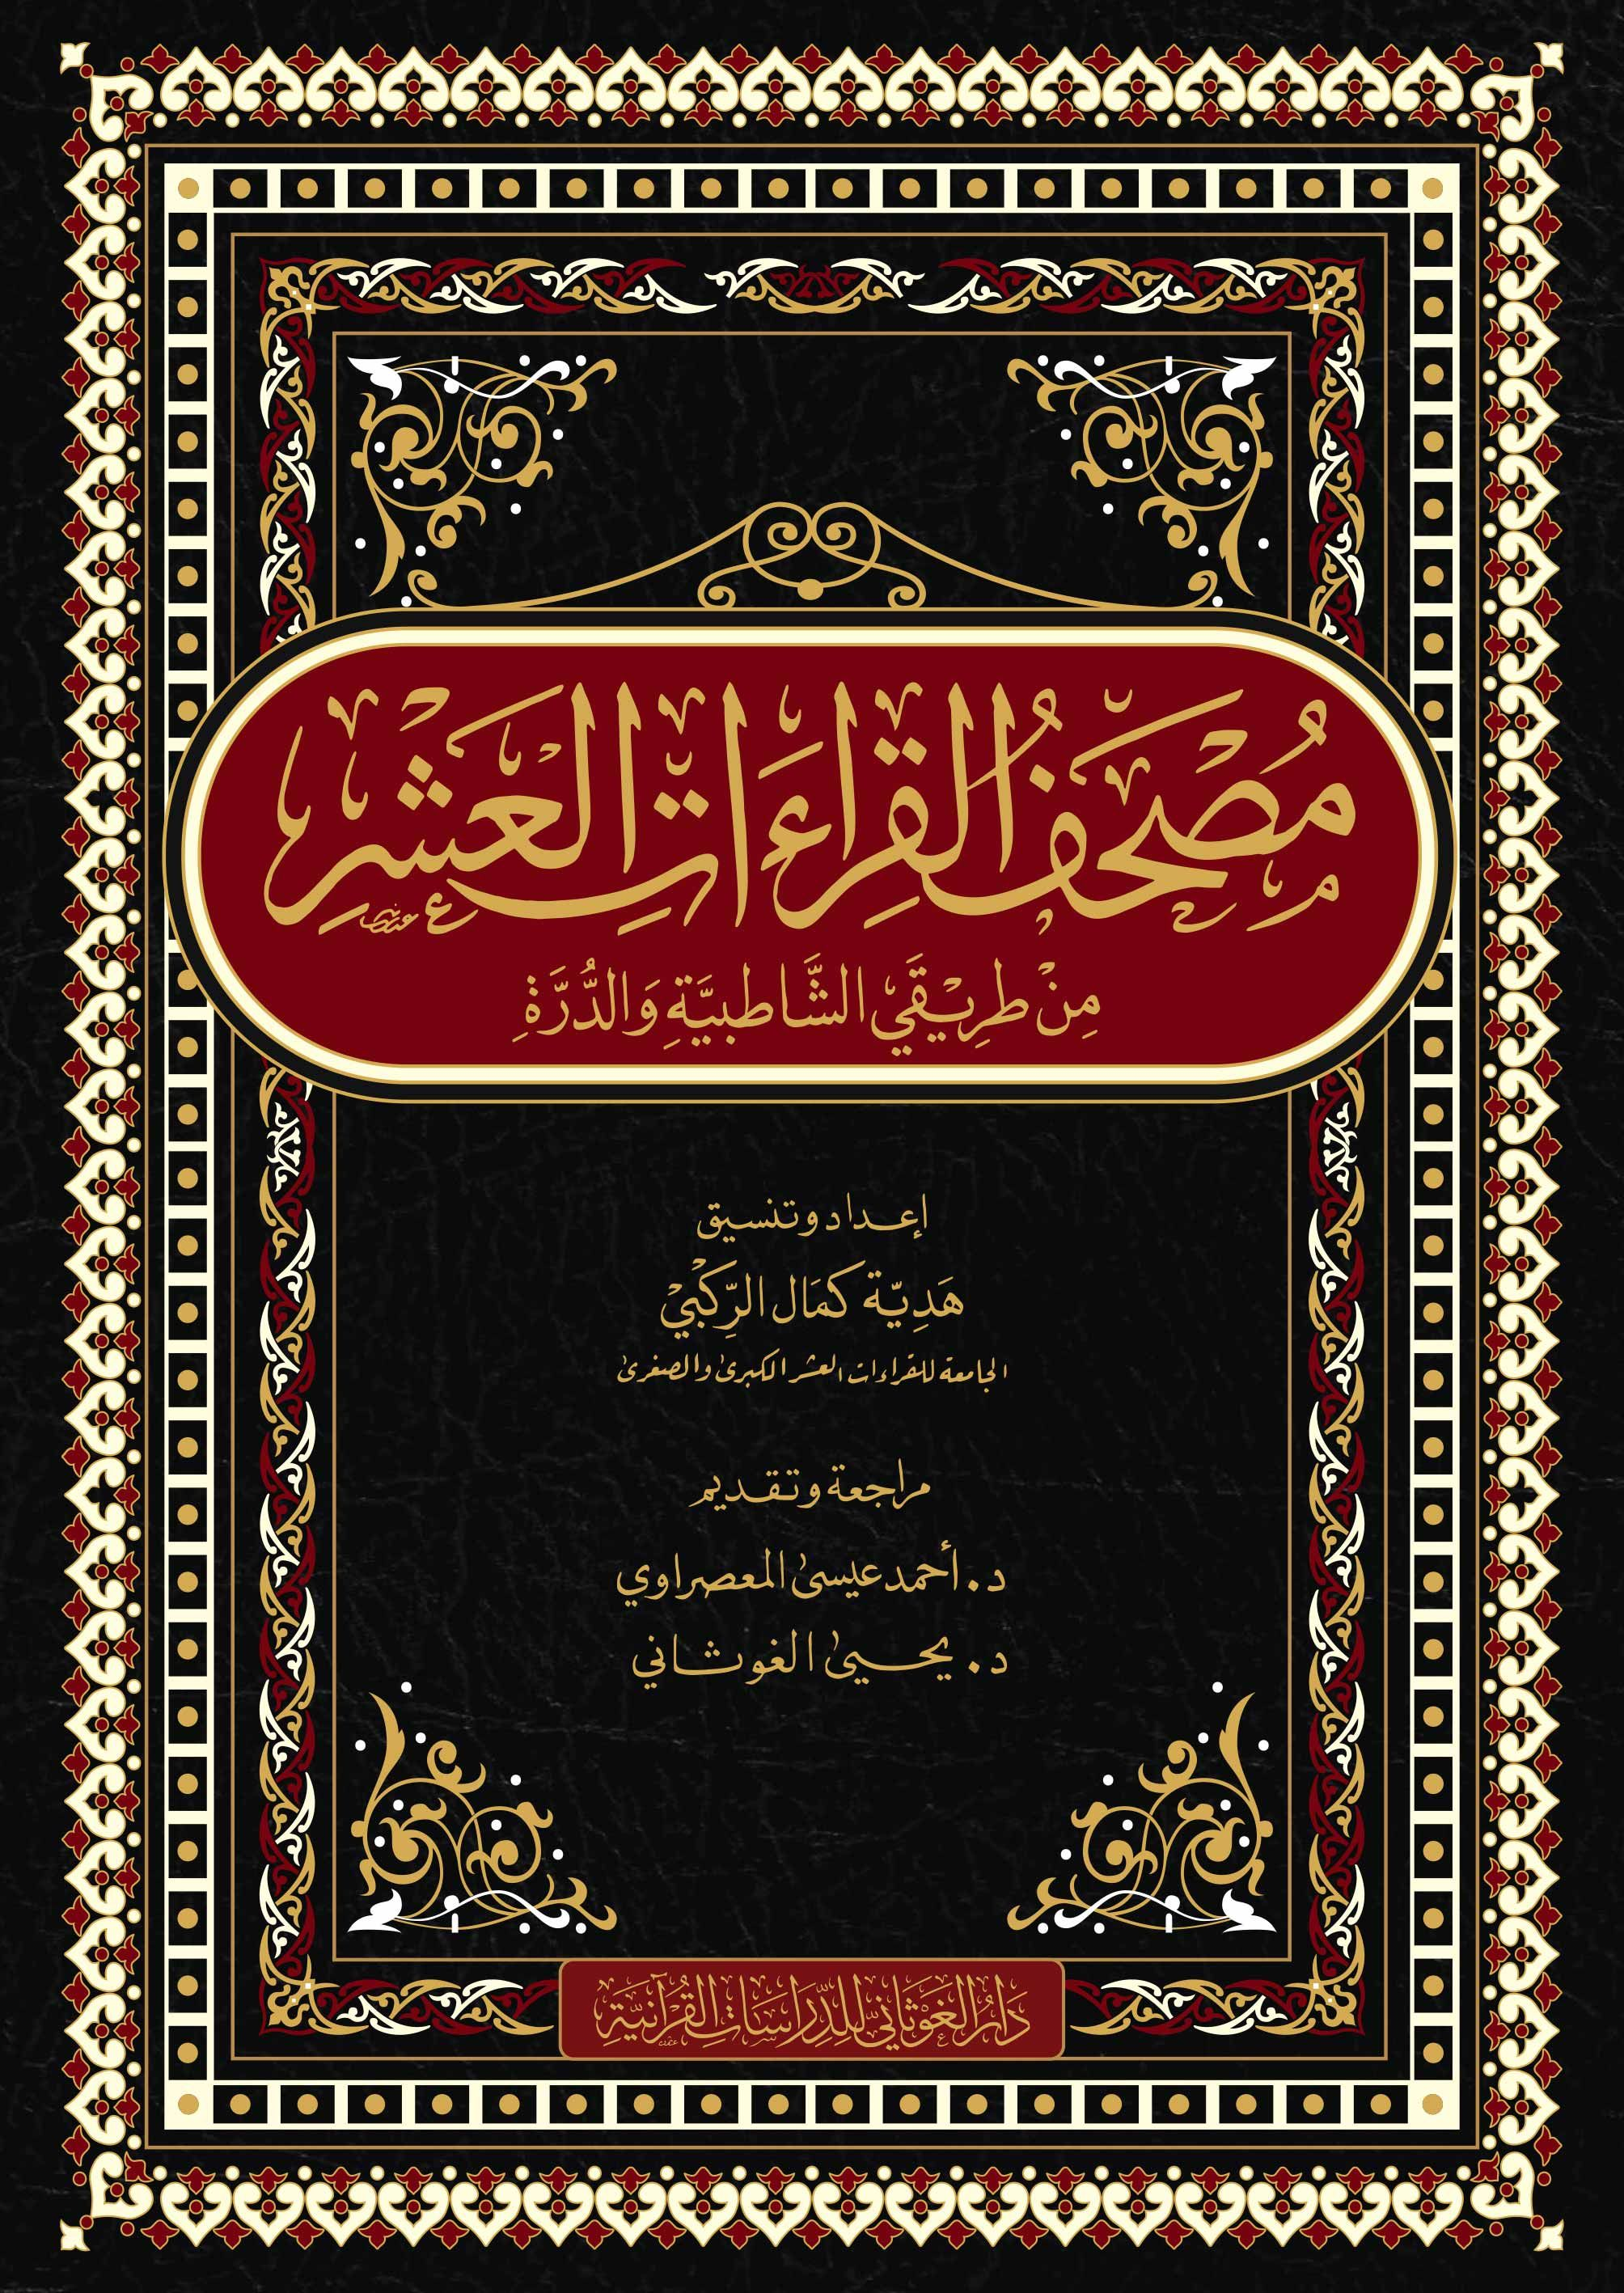 The Quran with the Ten Recitations according to Al-Shatibiyyah